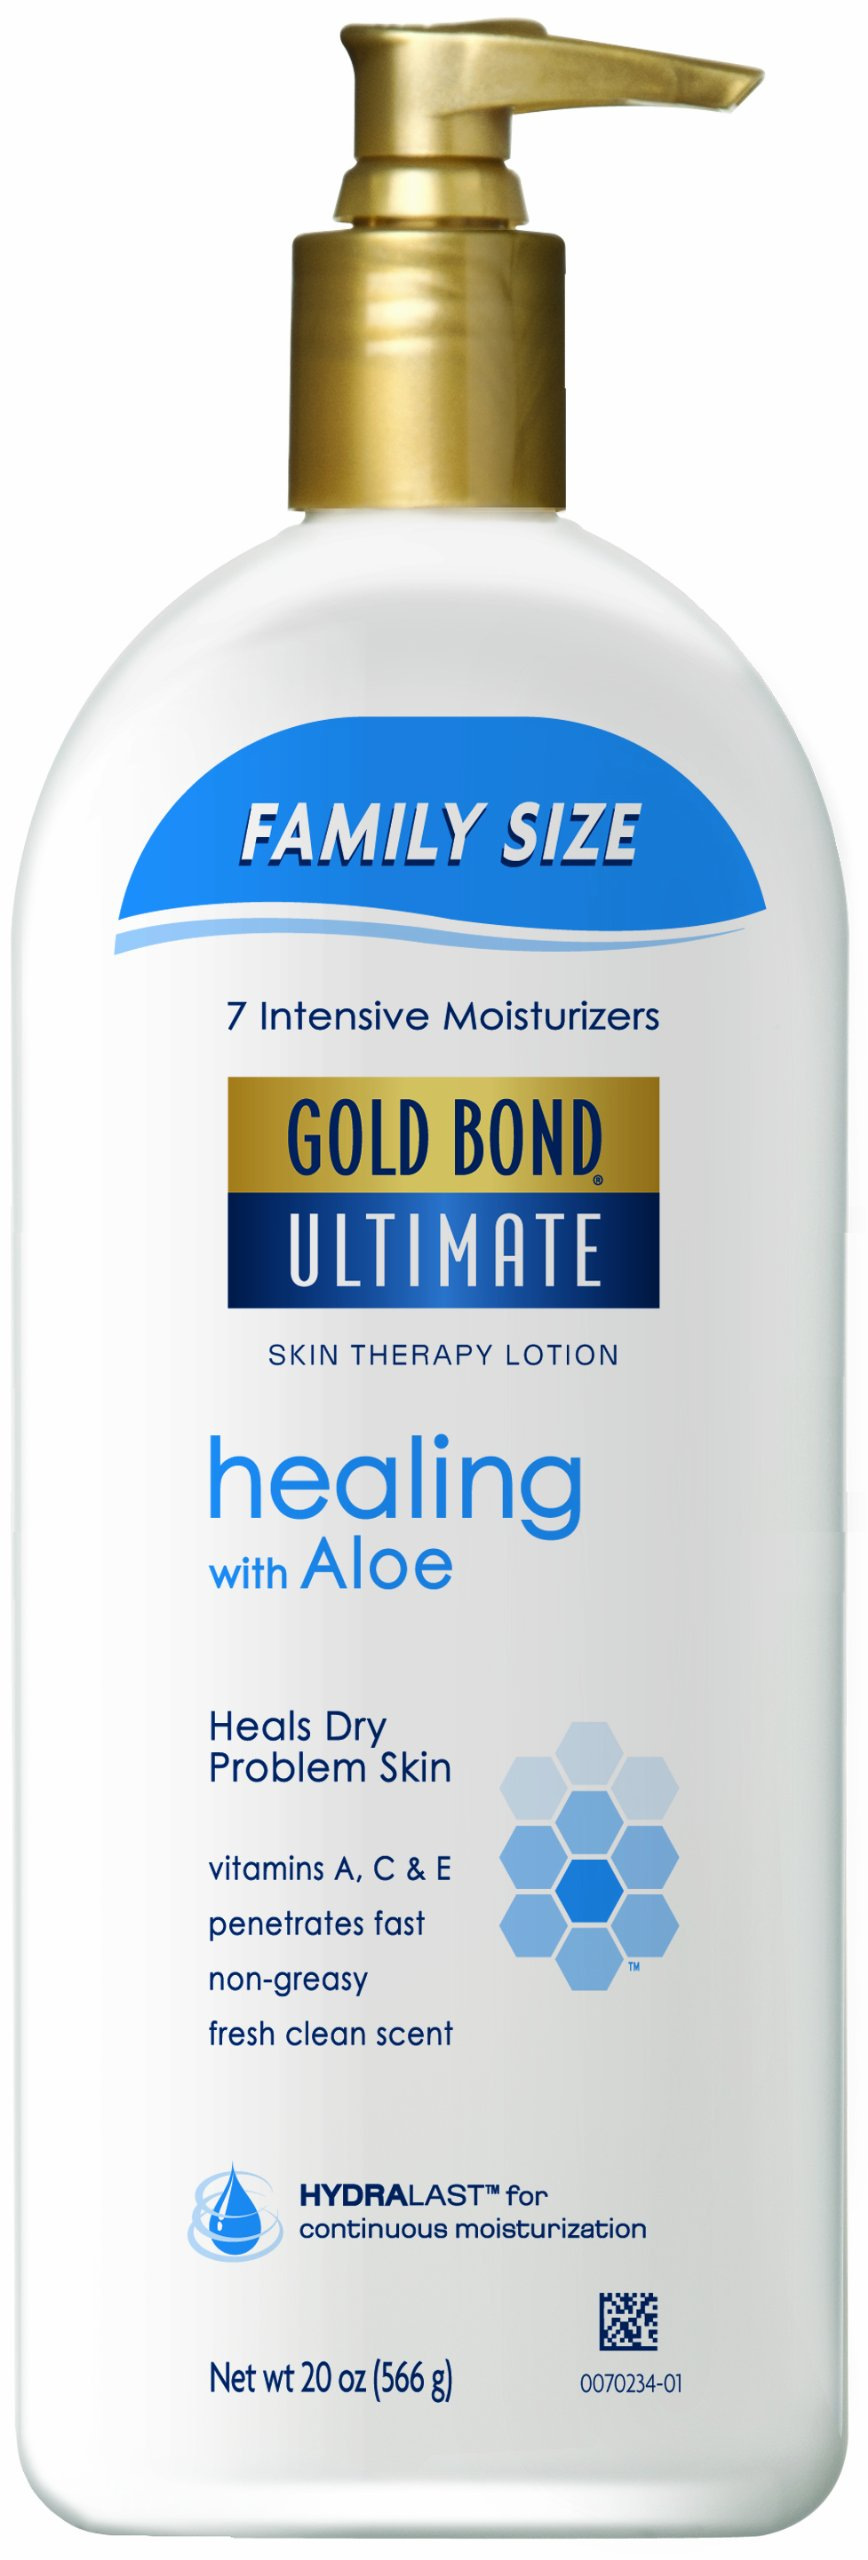 Gold Bond Ultimate Healing Skin Therapy Lotion Family Size, Aloe, 20 Ounce